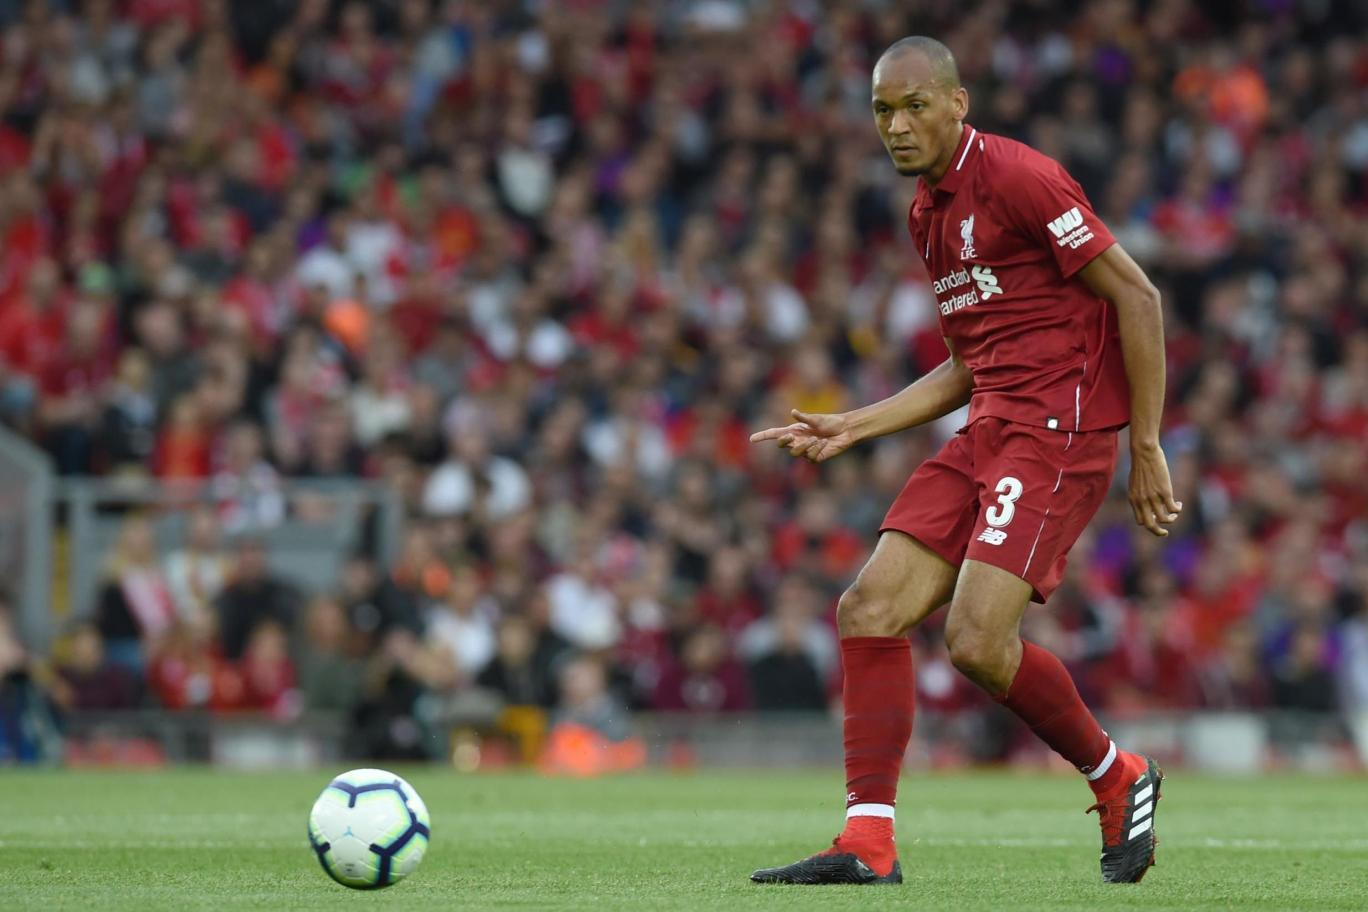 After a slow start and many doubters, undefeated Fabinho is the 'lighthouse' looking to lead Jurgen Klopp's side to greatness - Bóng Đá